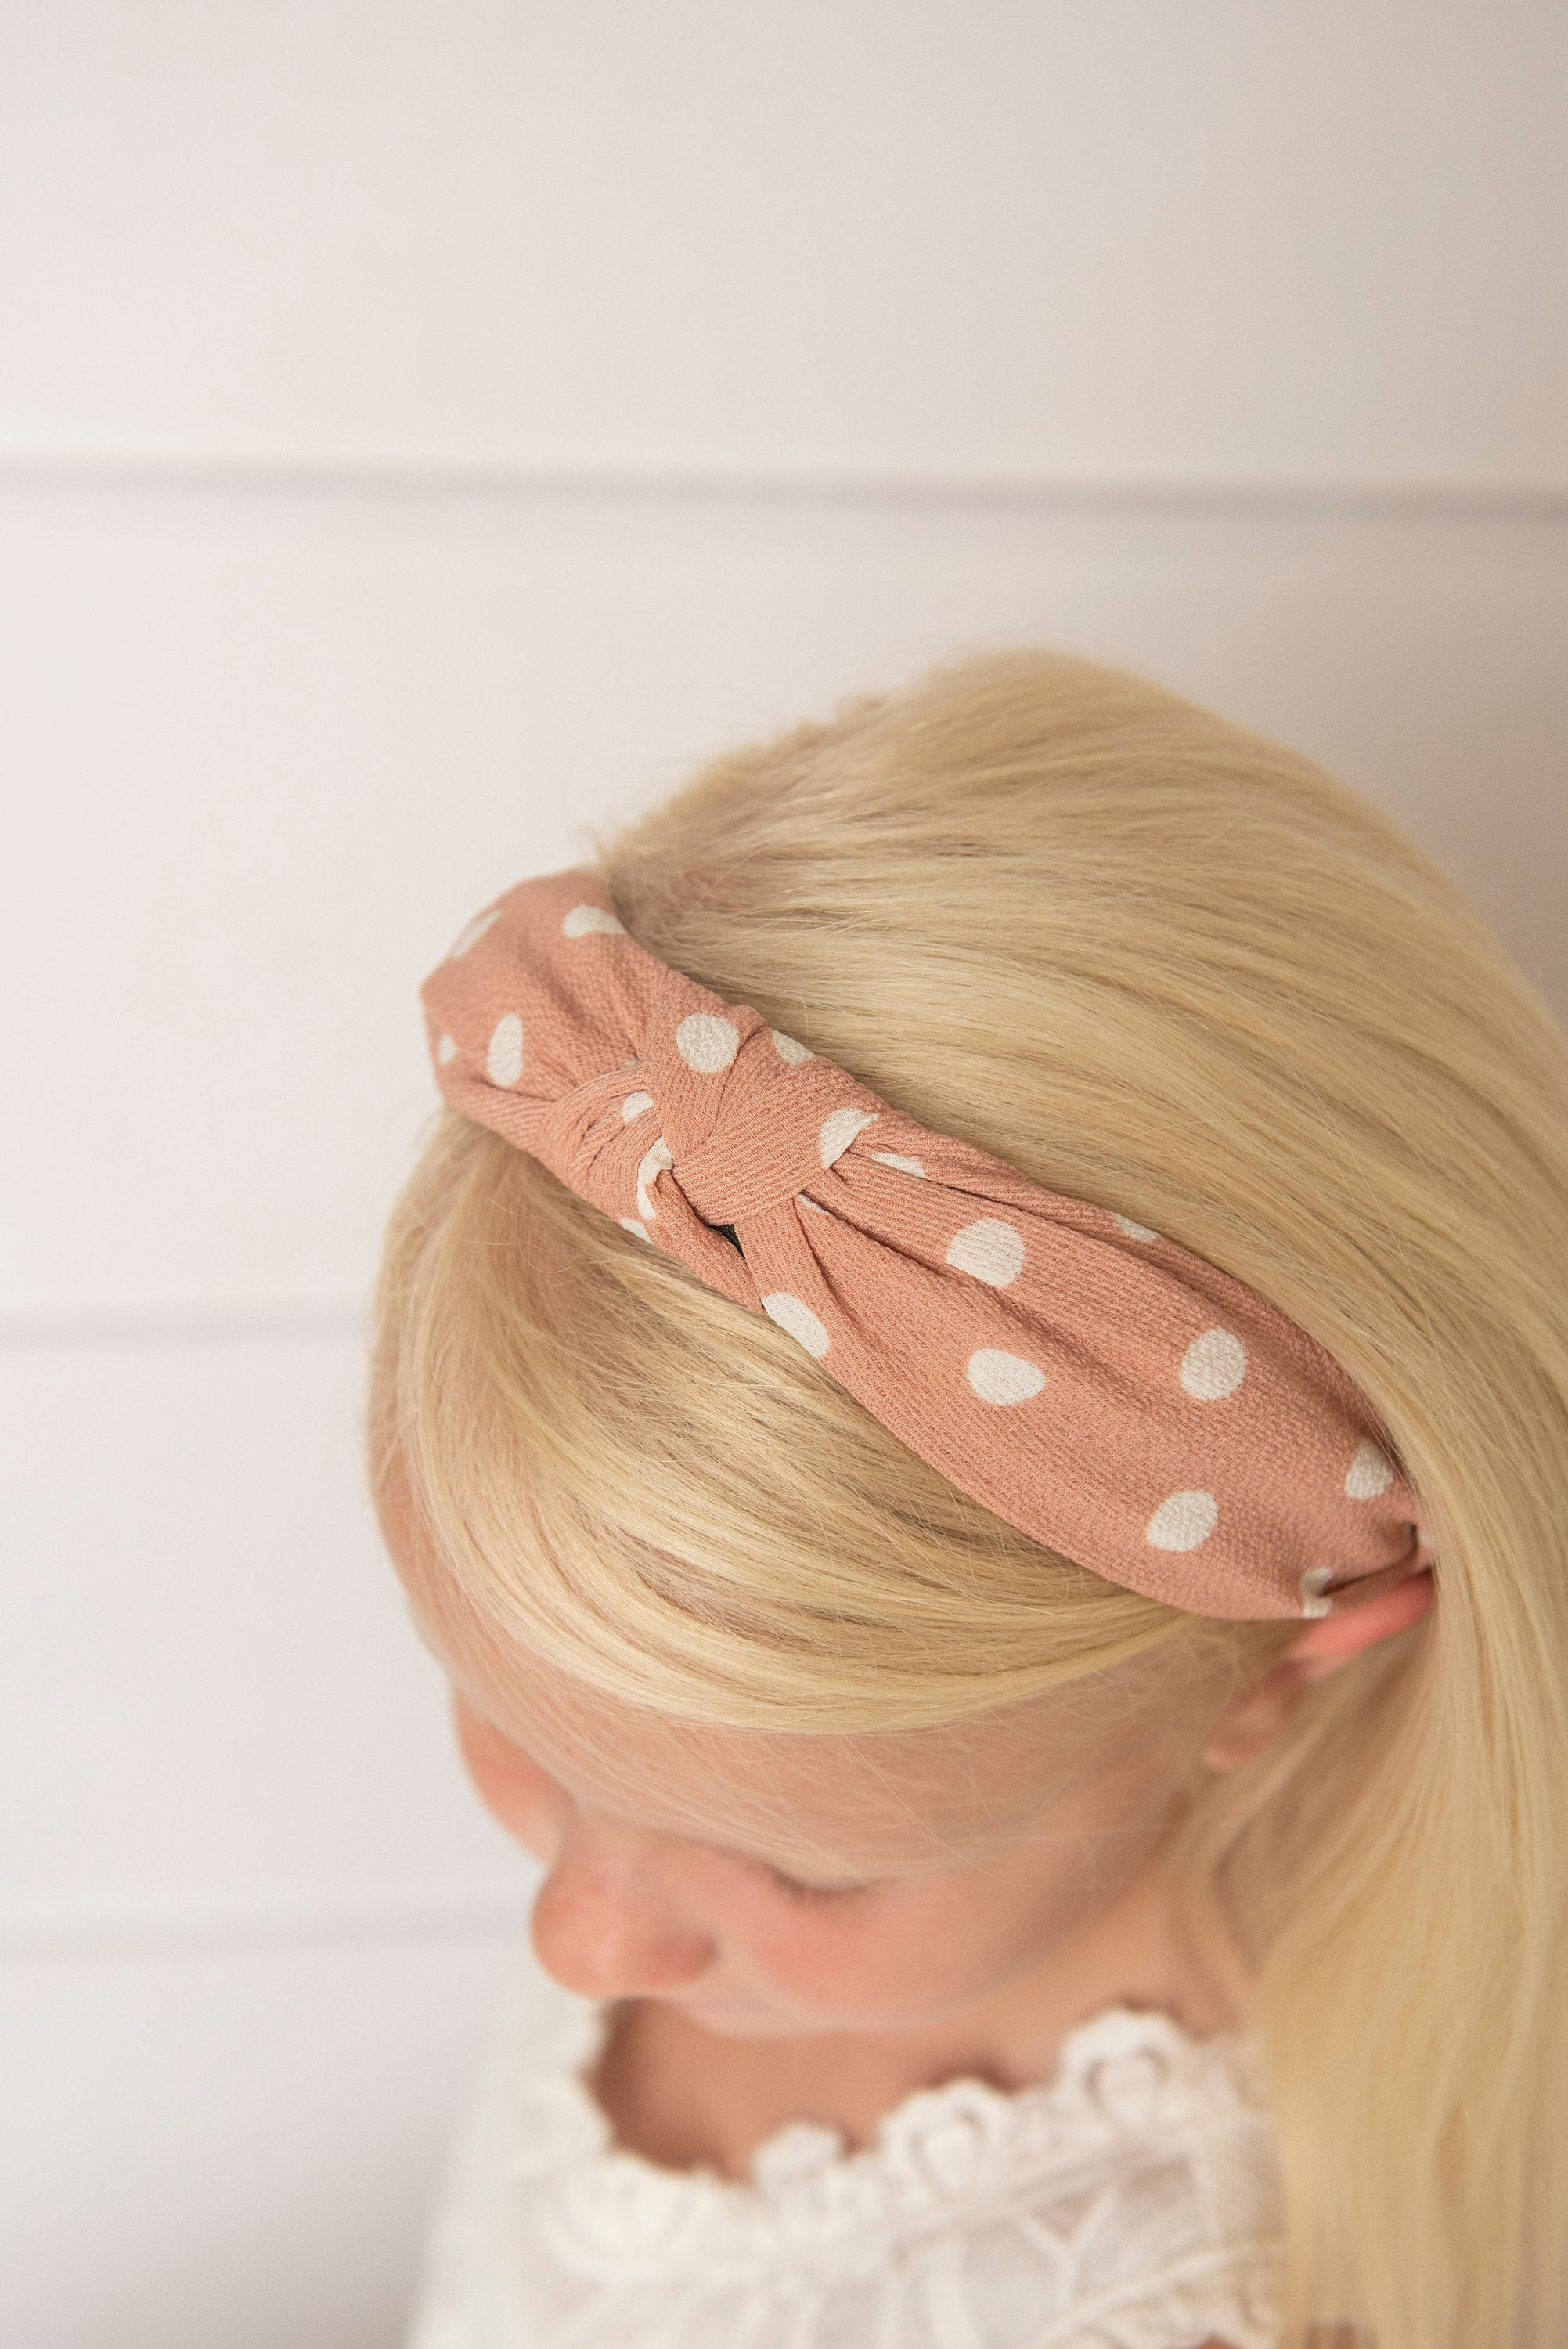 blush knotted hard headband for girl, womens hard headband for women, girl headband with bow, knotted headband for women's headband, turban